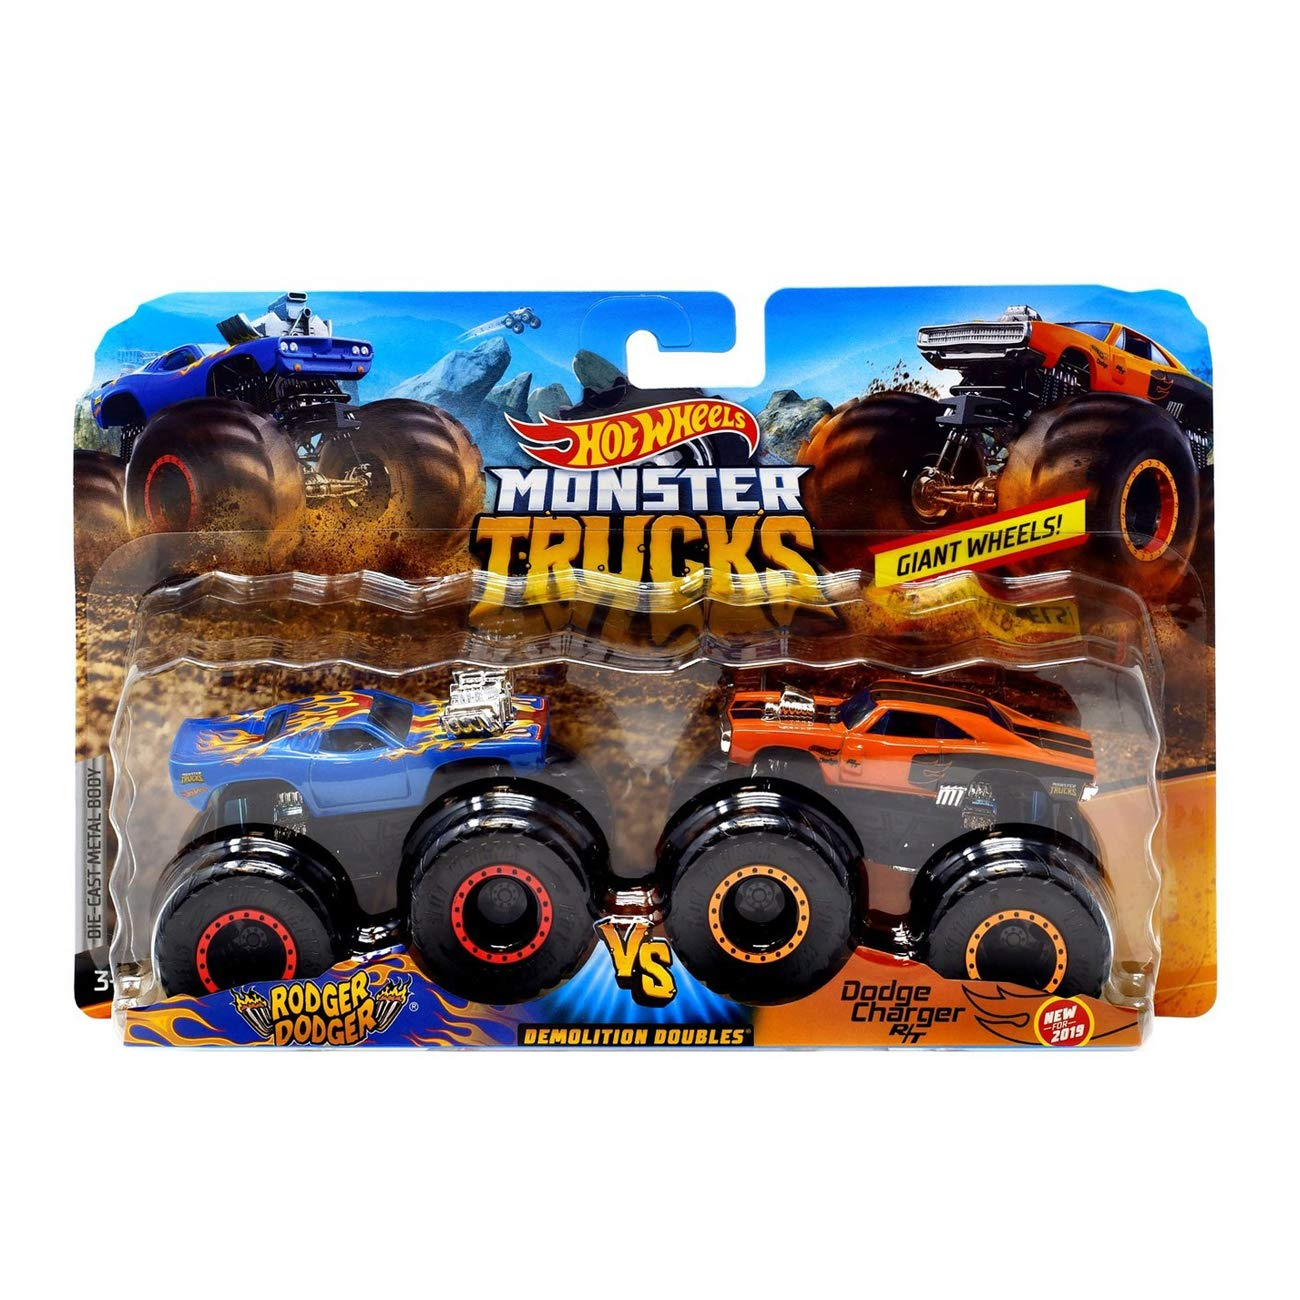 Buy Mattel Hot Wheels Monster Trucks Demolition Doubles Giant Wheel Rodger Dodger Vs Dodge Charger R T Online At Low Prices In India Amazon In